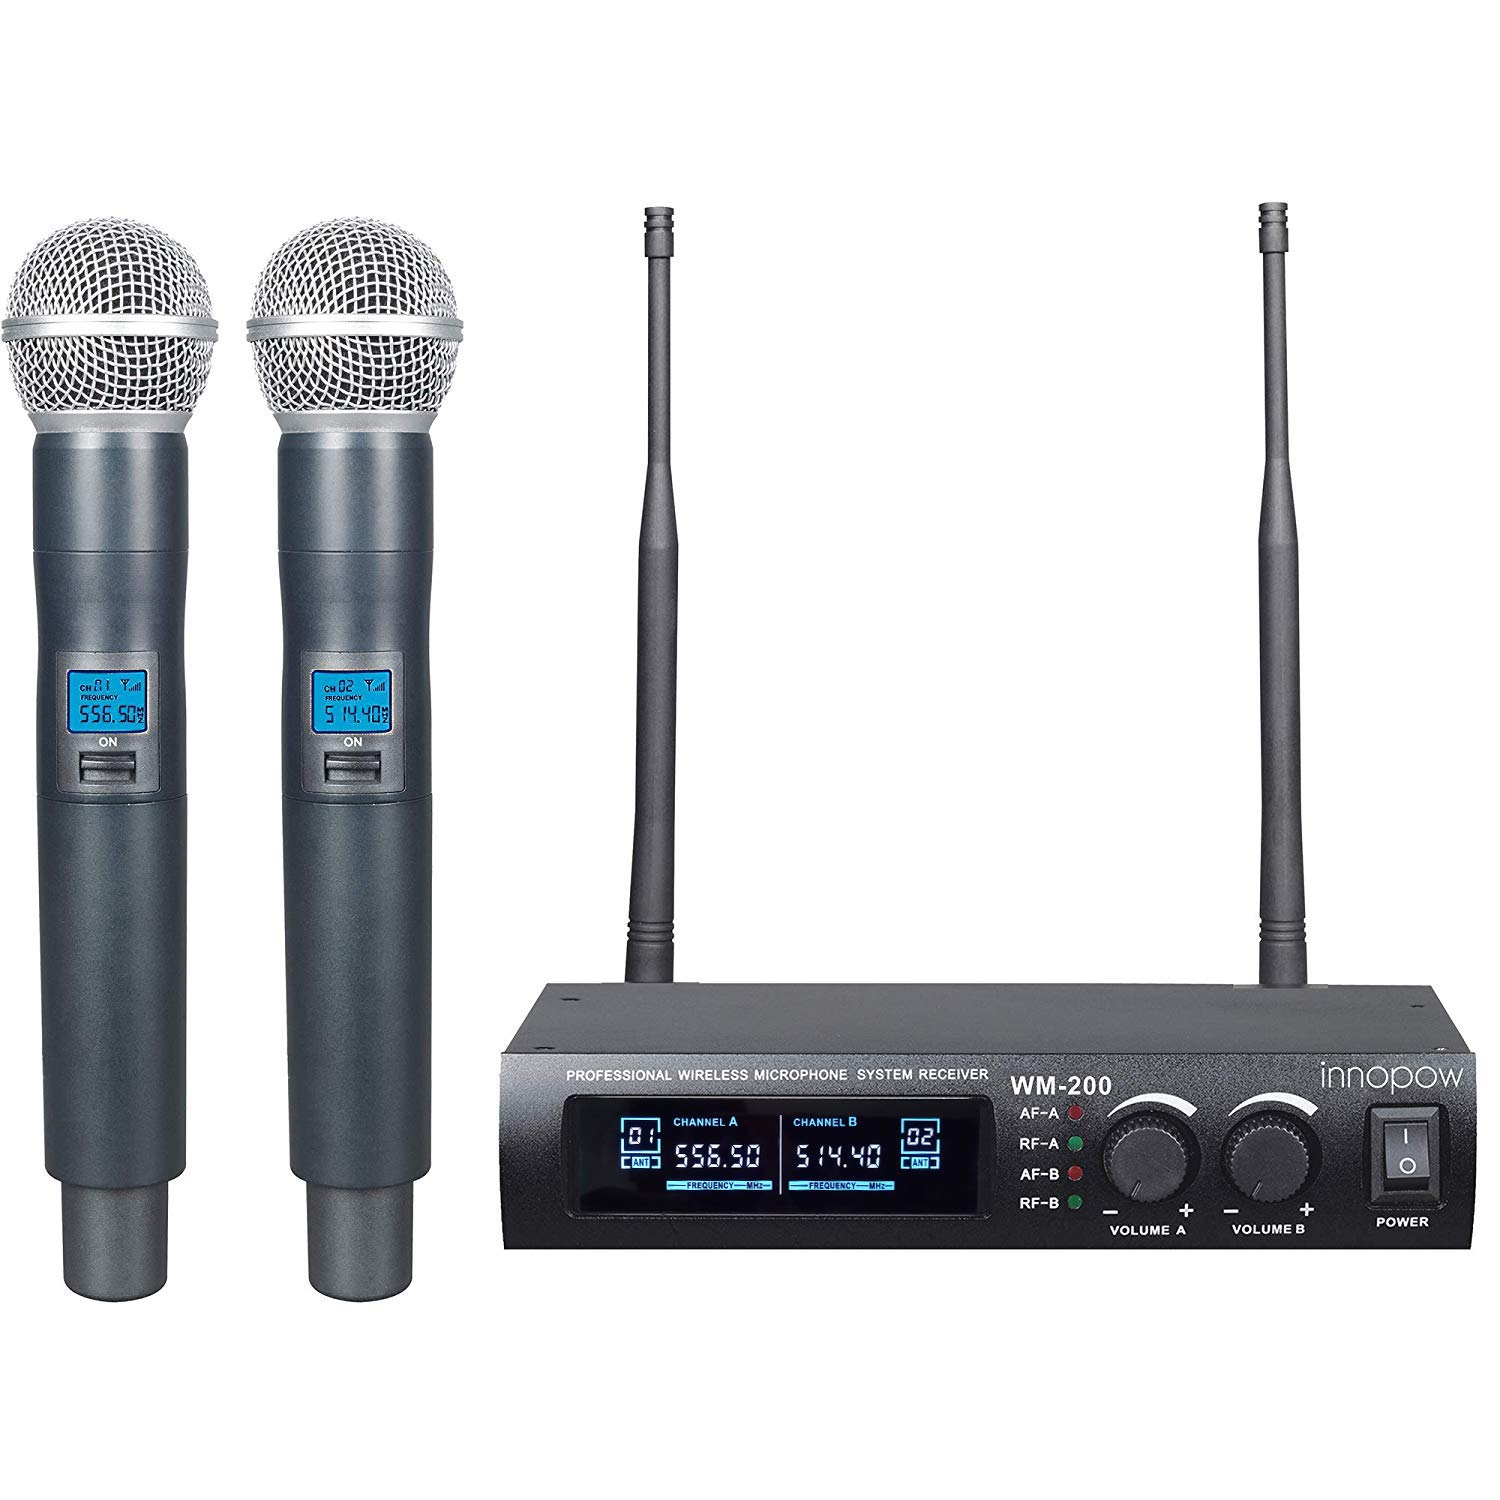 innopow Metal Dual UHF Wireless Microphone System,inp Metal Cordless Mic Set, Long Distance 150-200Ft,16 Hours Continuous Use for Family Party,Church,Small Karaoke Night (WM-200-New) (WM200N) by innopow